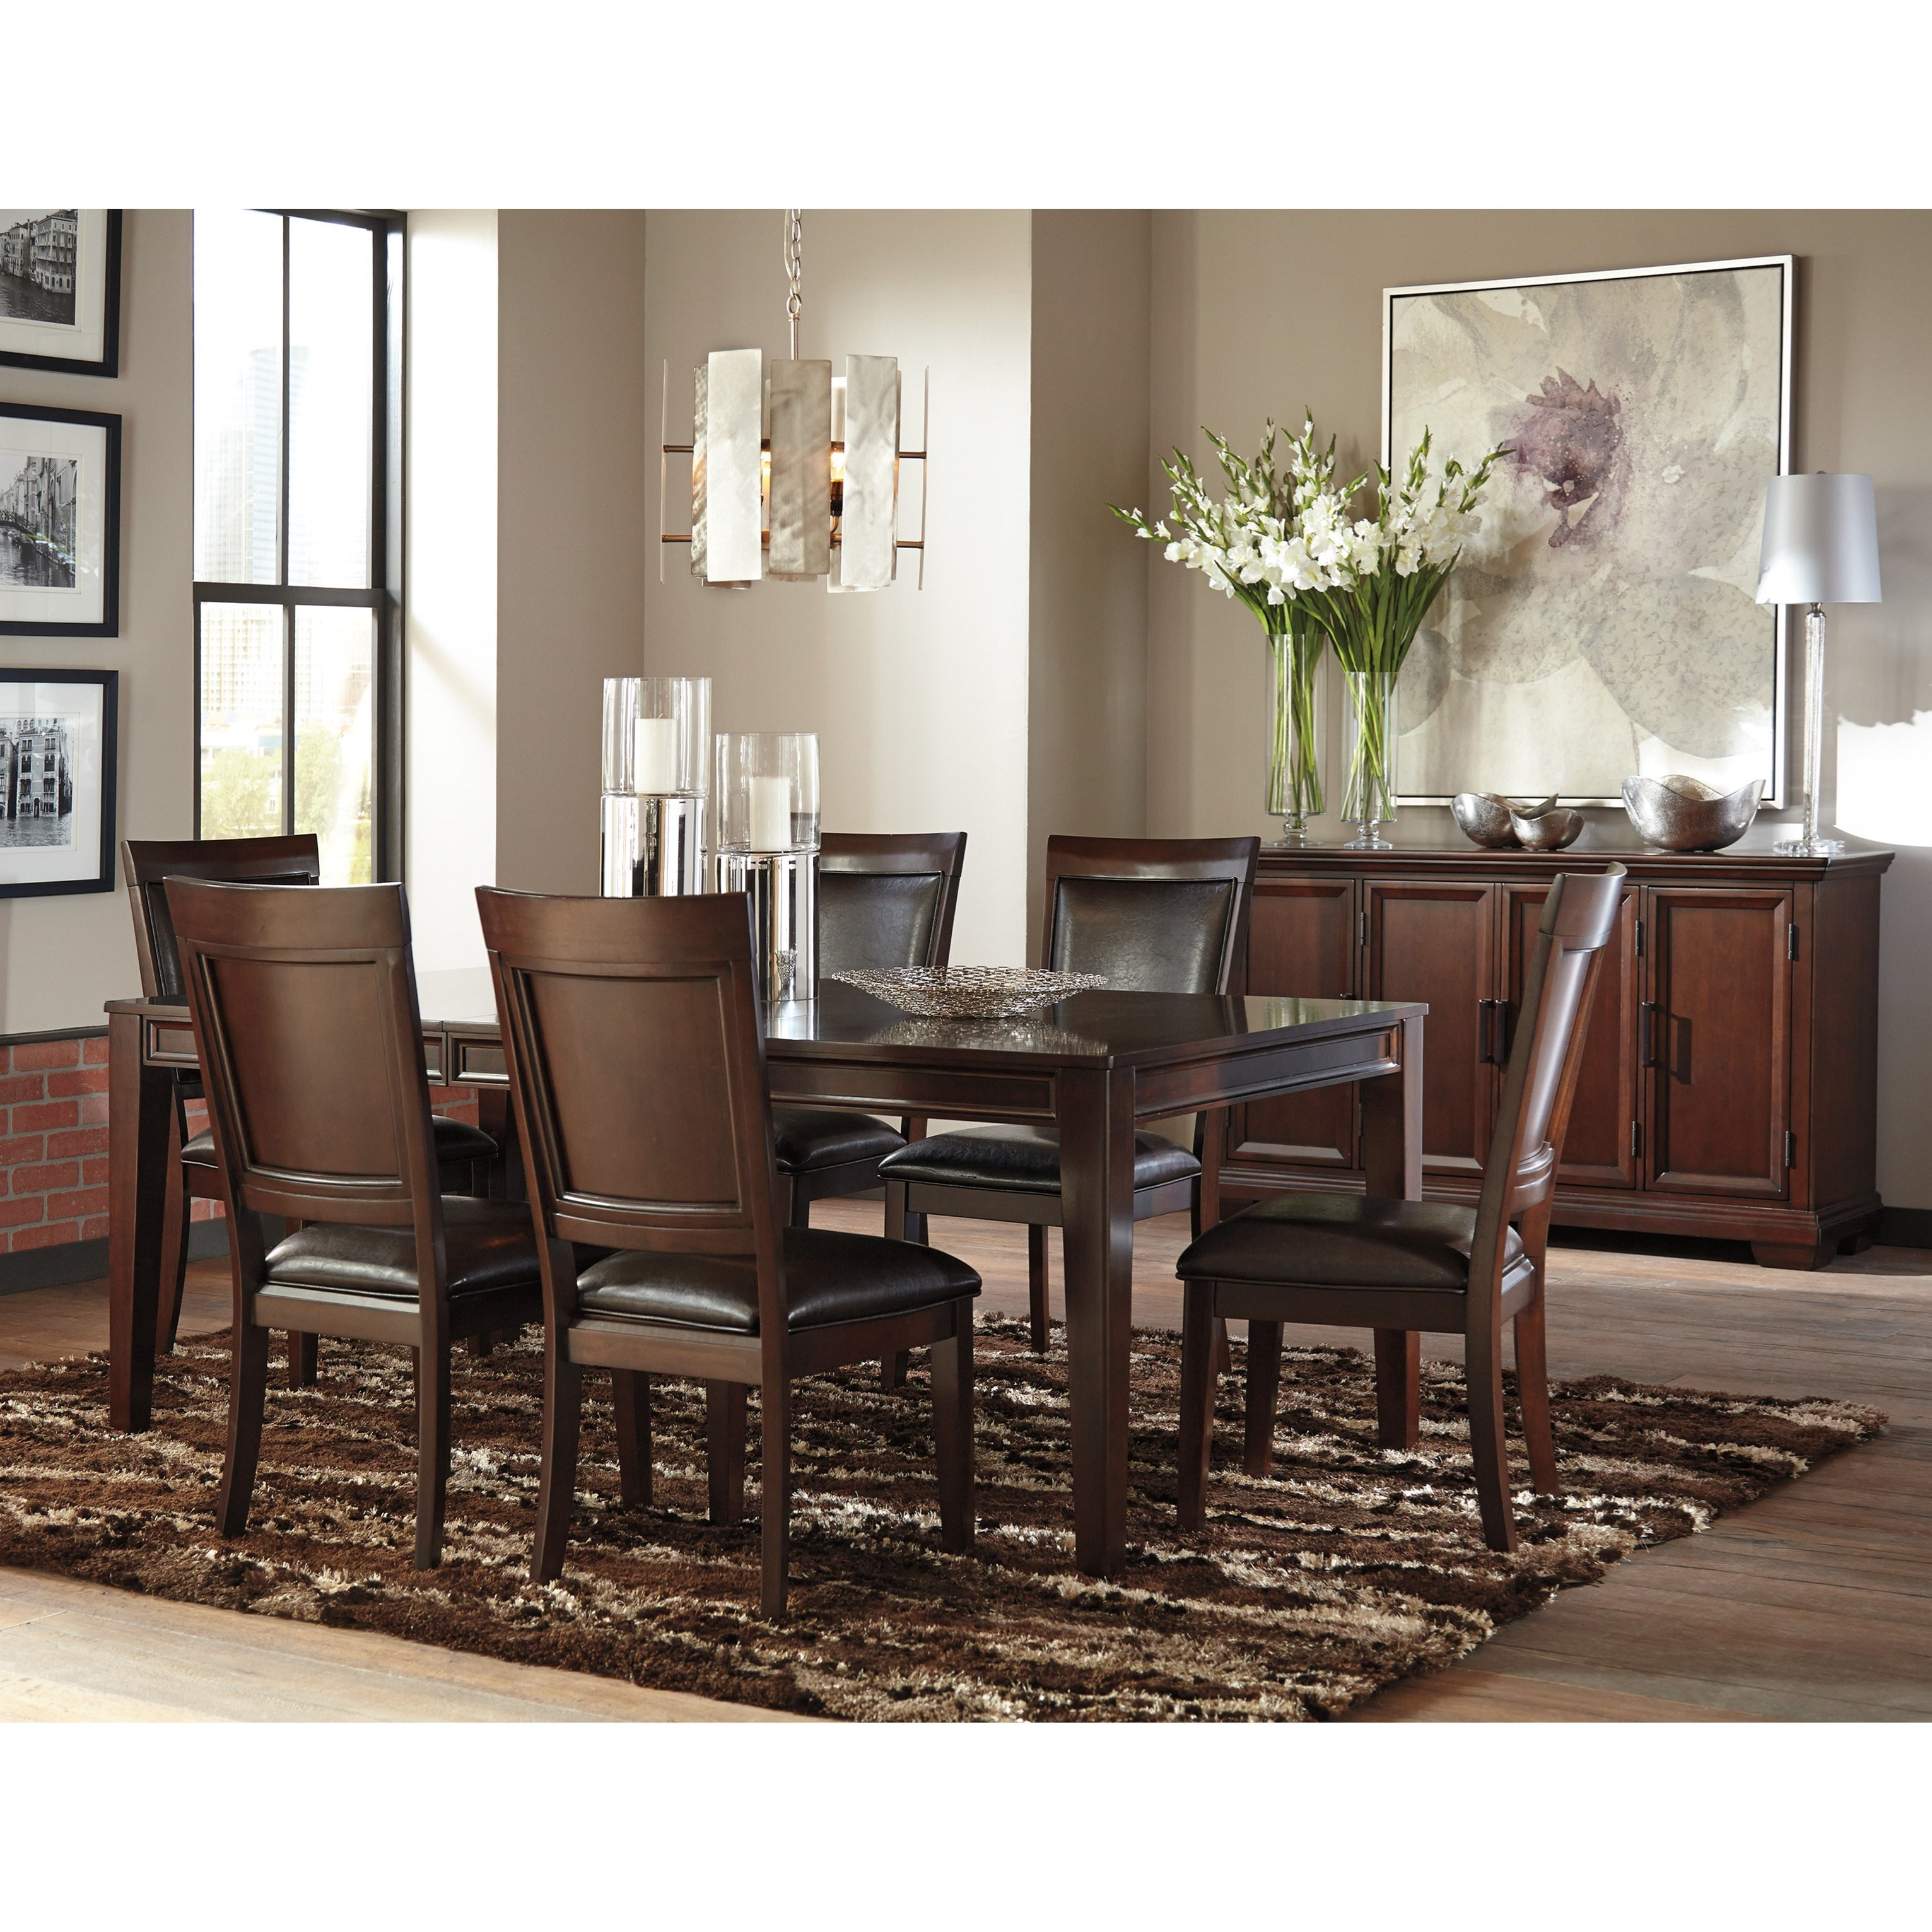 Signature Design By Ashley Shadyn Casual Dining Room Group   Item Number:  D471 Dining Room